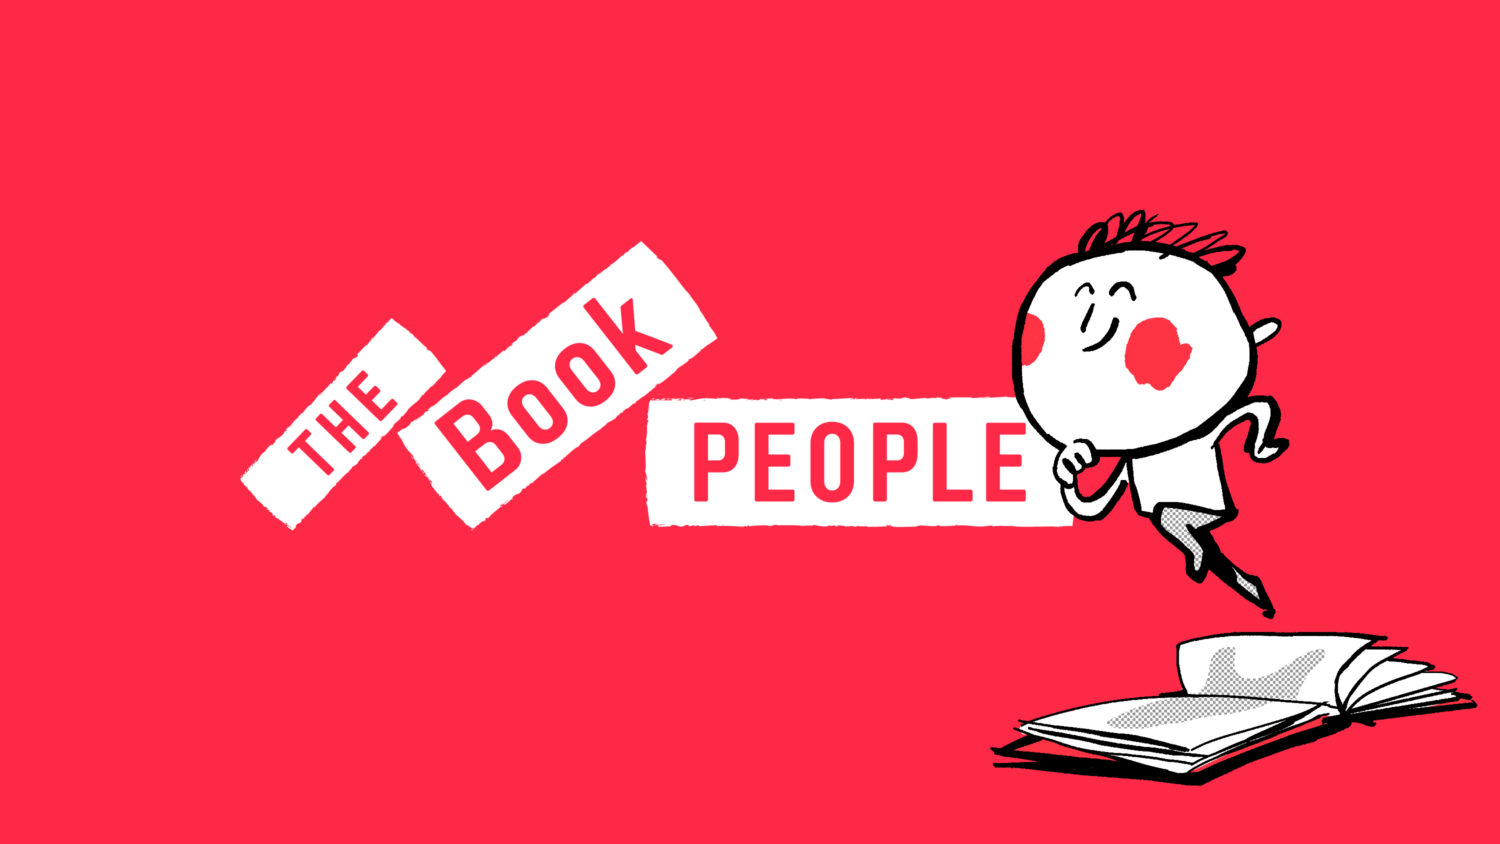 New brand for The Book People